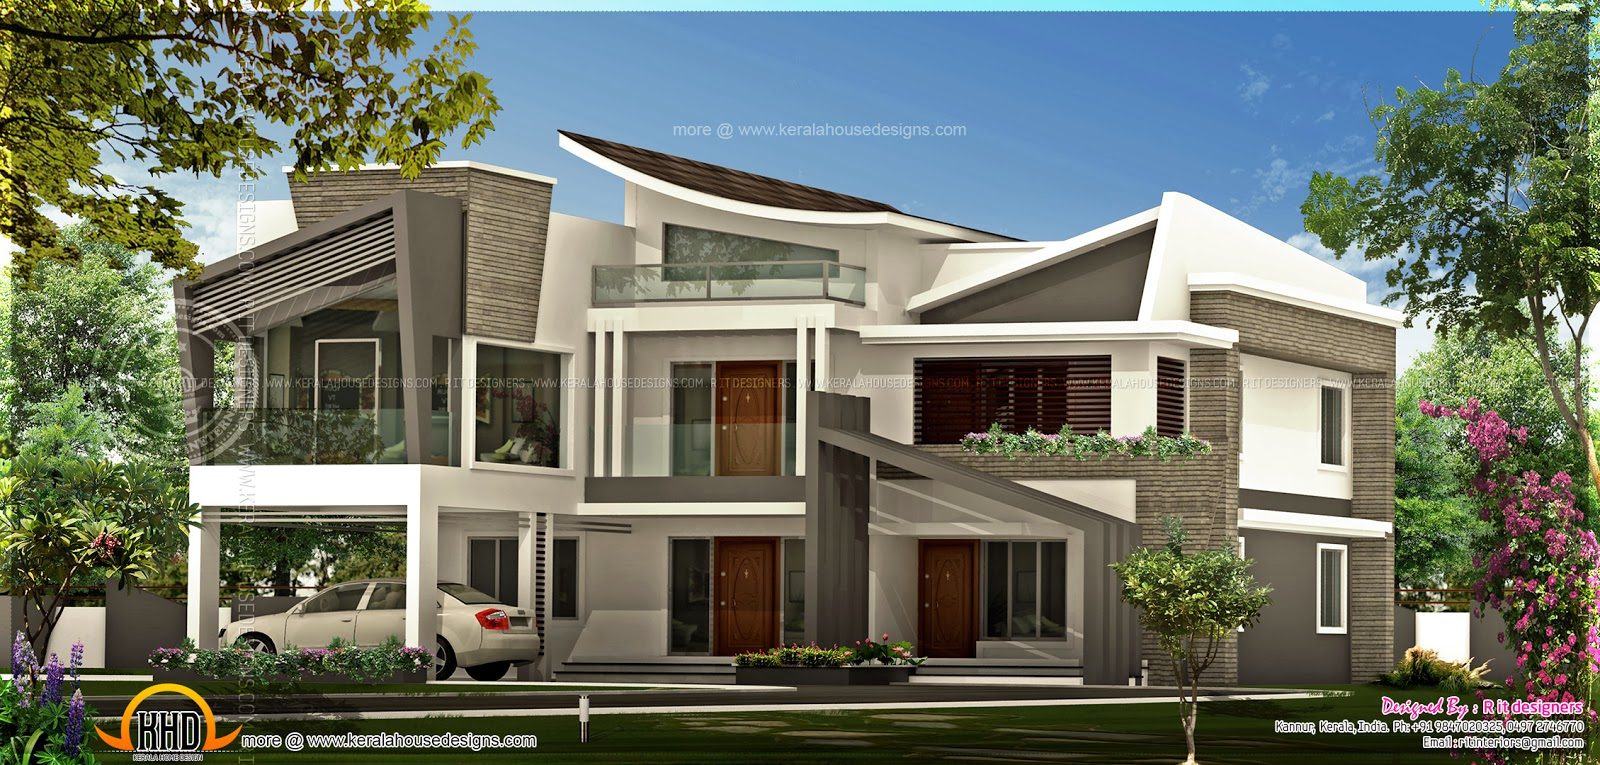 Top 19 photos ideas for unique modern houses home plans for Custom modern home plans